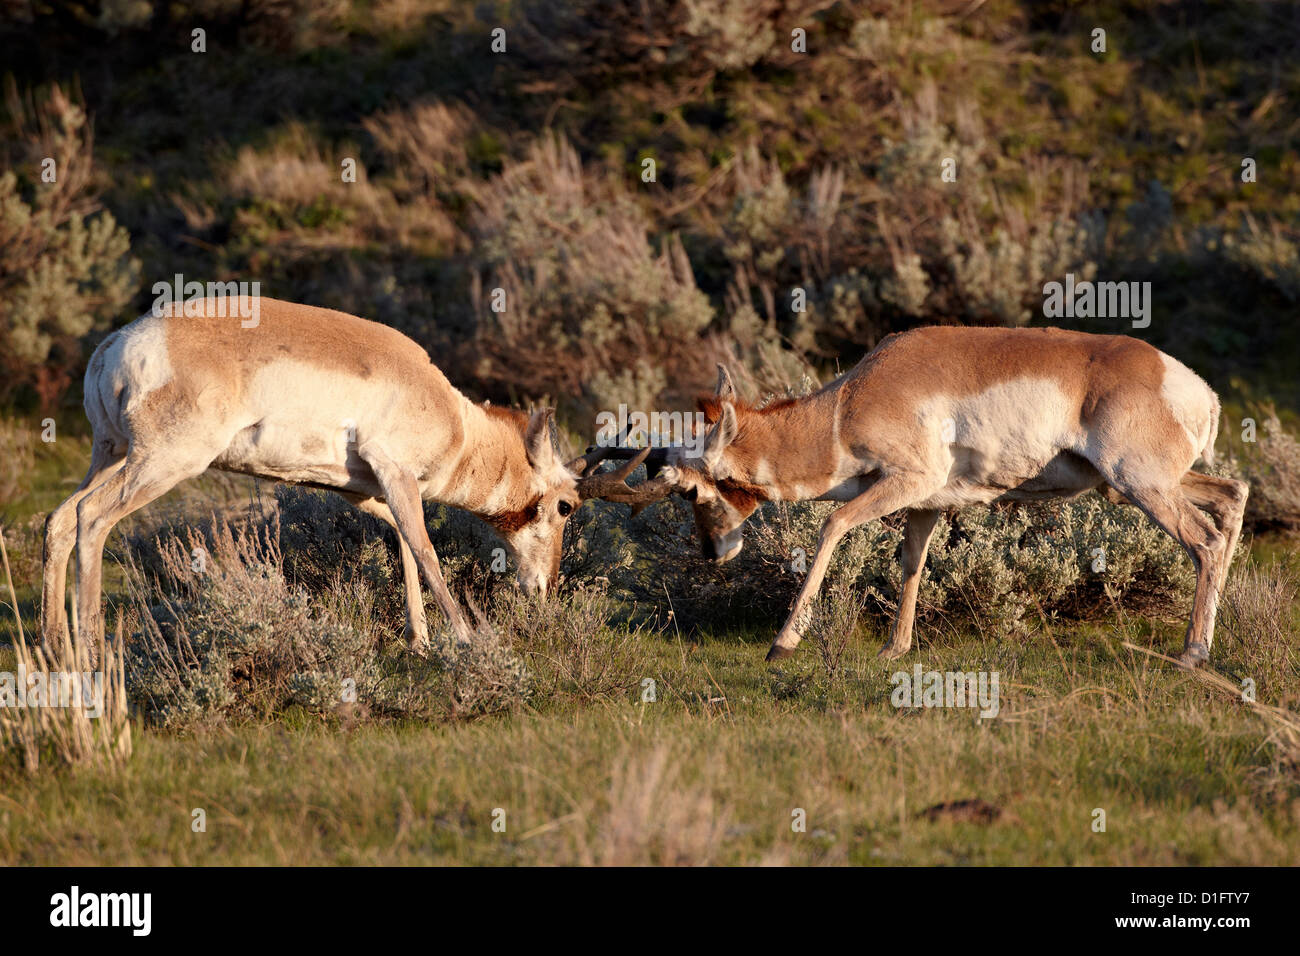 Two Pronghorn (Antilocapra americana) bucks sparring, Yellowstone National Park, Wyoming, United States of America - Stock Image